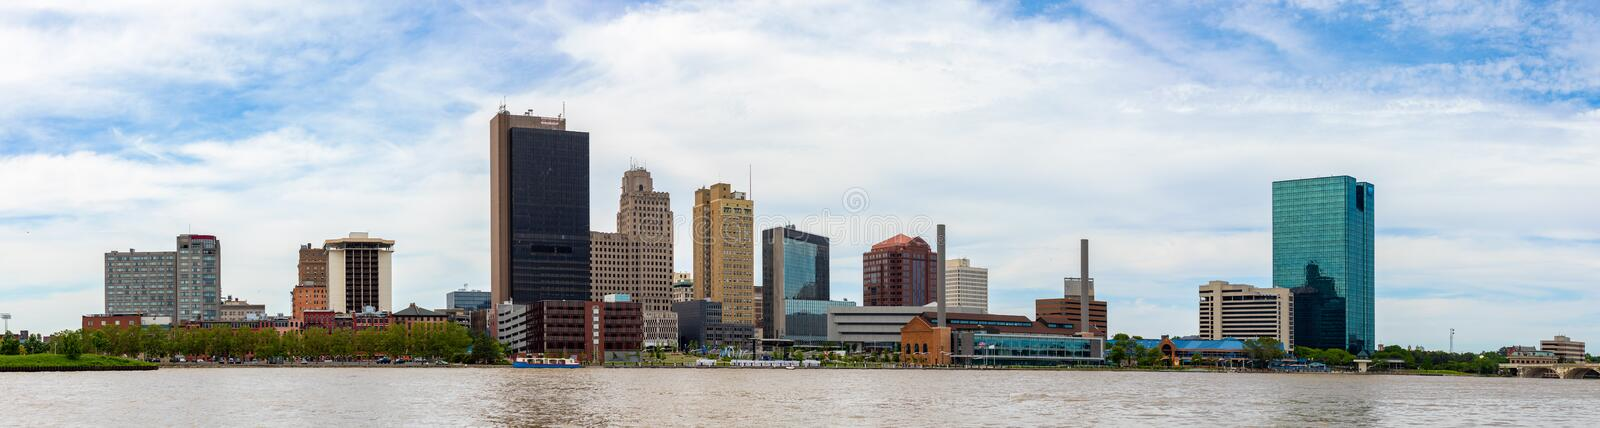 Toledo Skyline. Toledo, city located in the state of Ohio, United States, as seen from the International Park, across the Maumee River royalty free stock photography